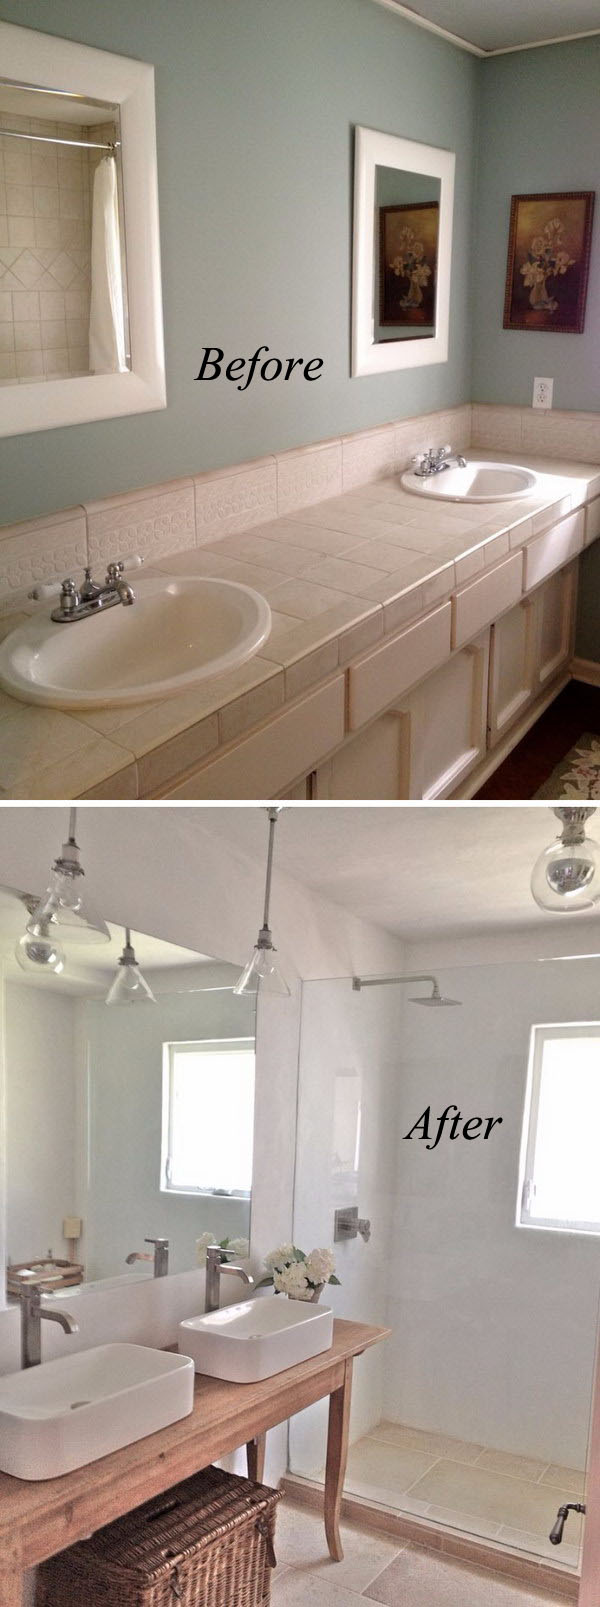 33 Inspirational Small Bathroom Remodel Before and After ...